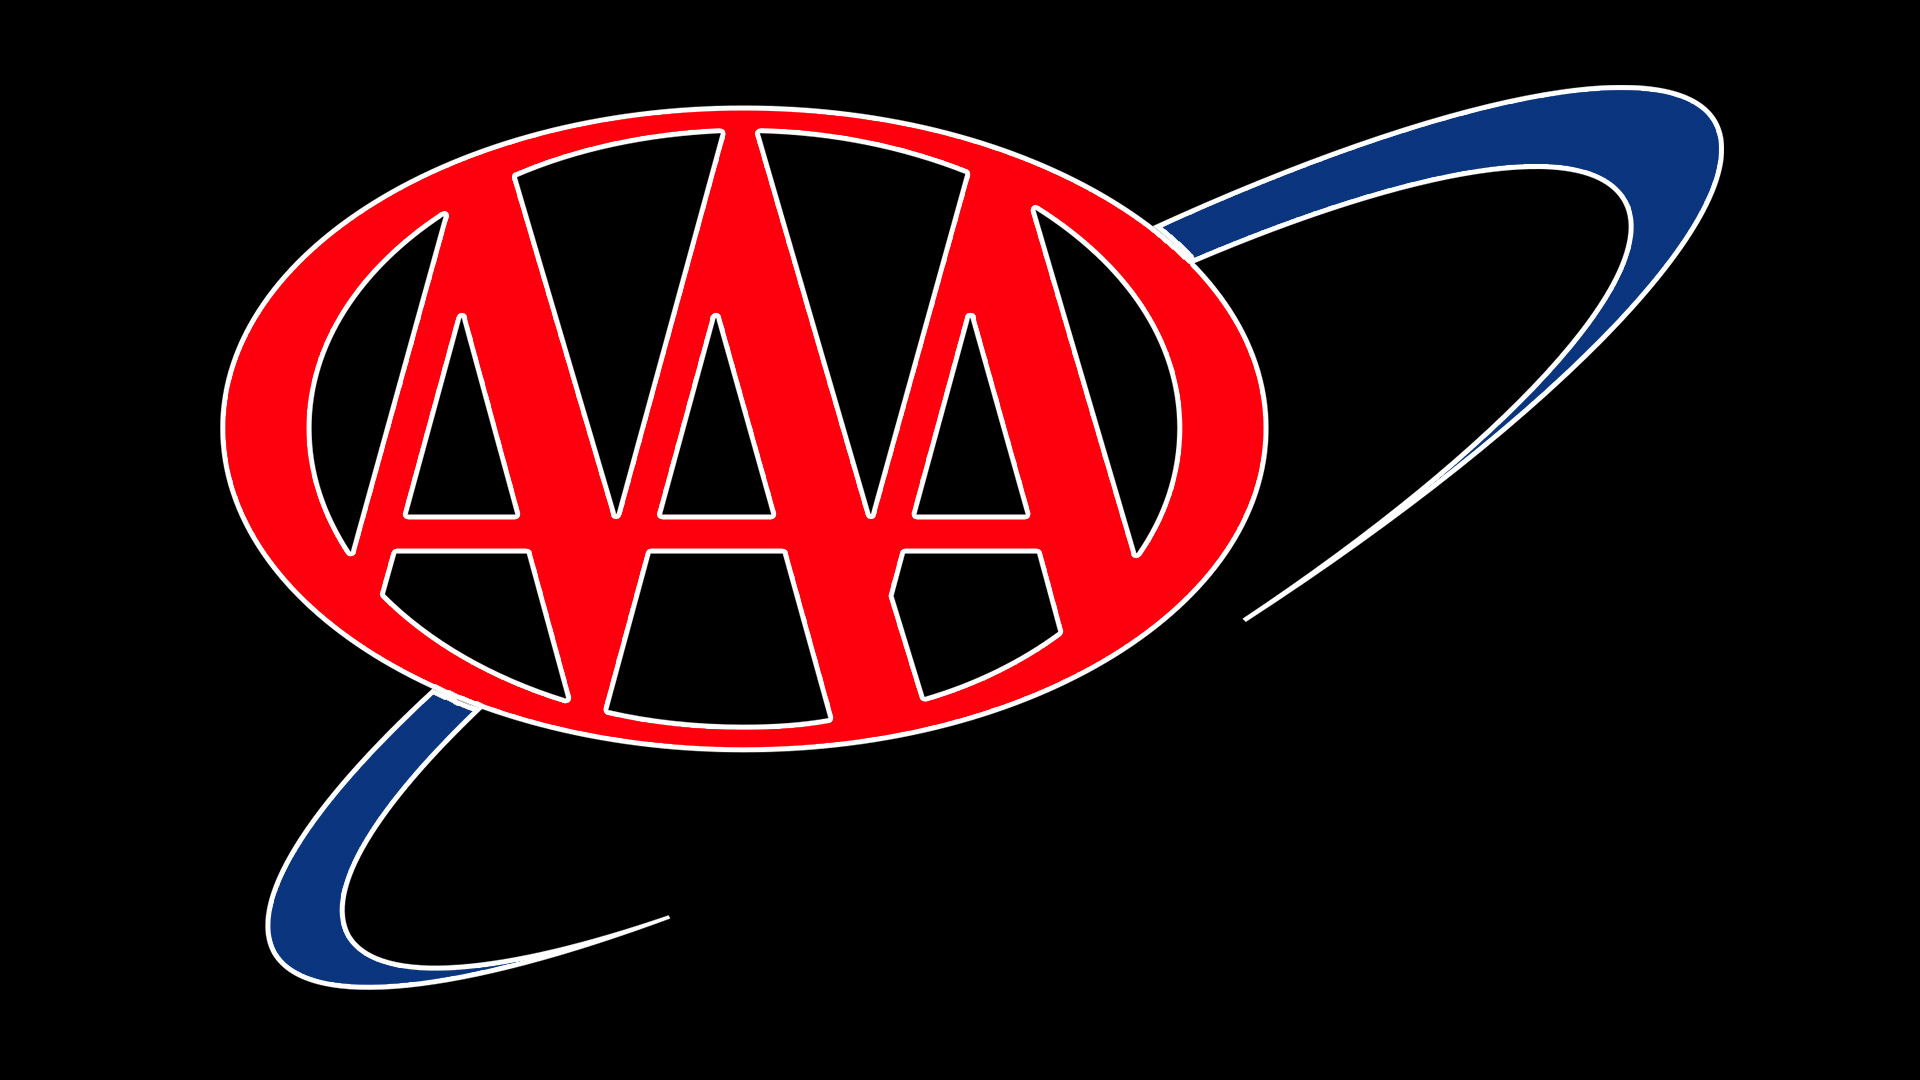 Meaning AAA logo and symbol.